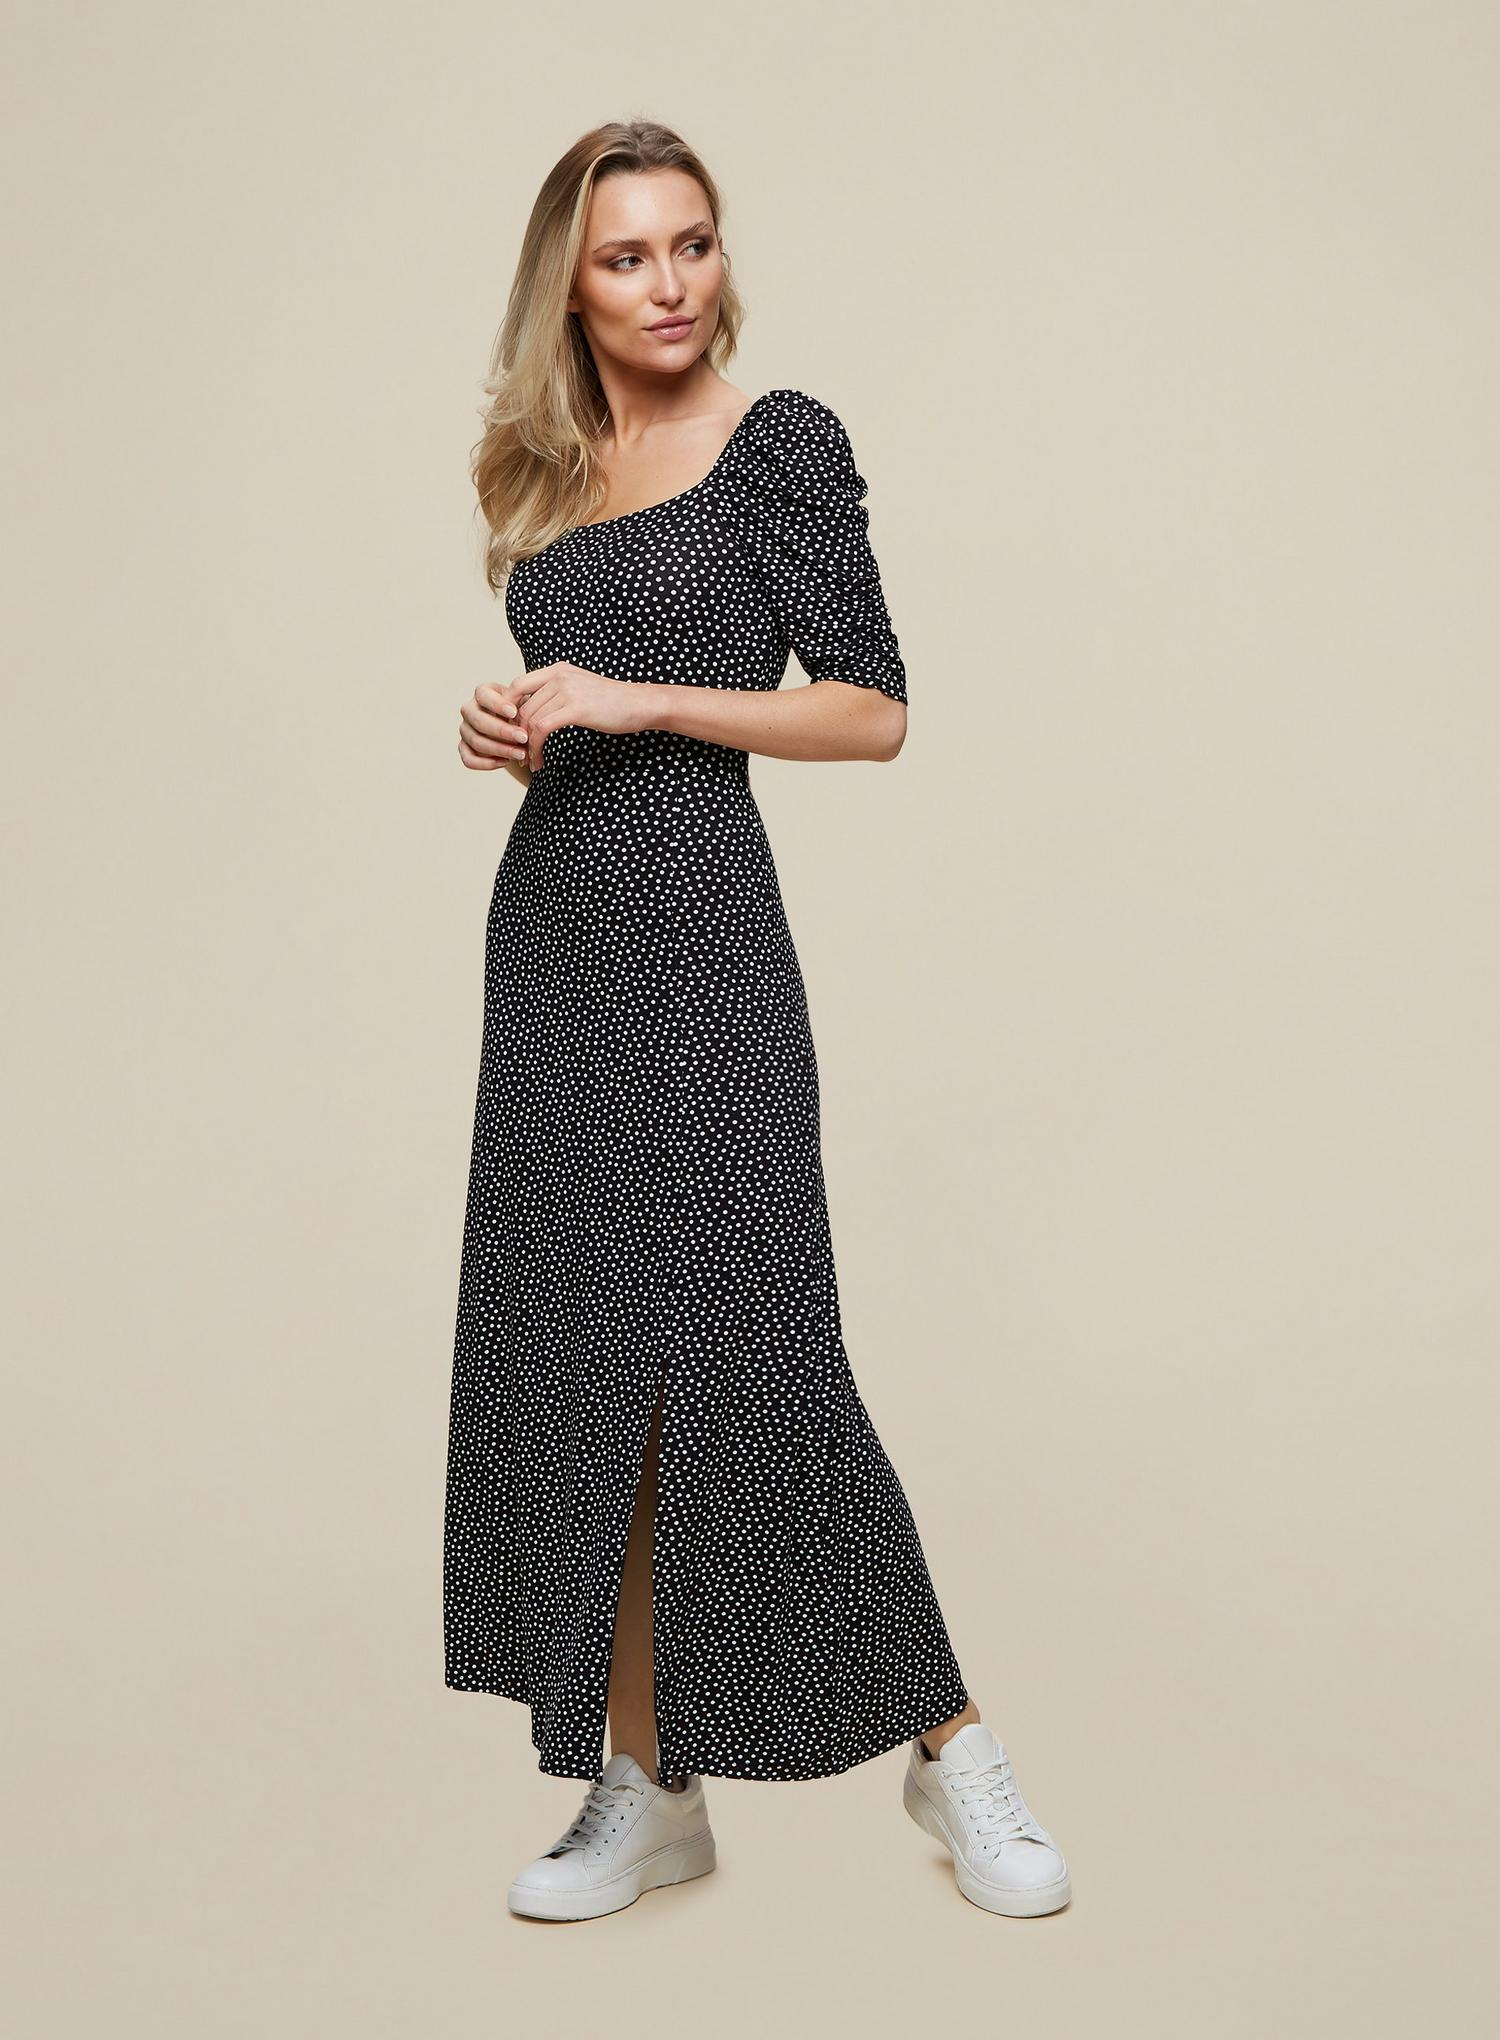 105 Black Spot Print Midi Dress image number 3